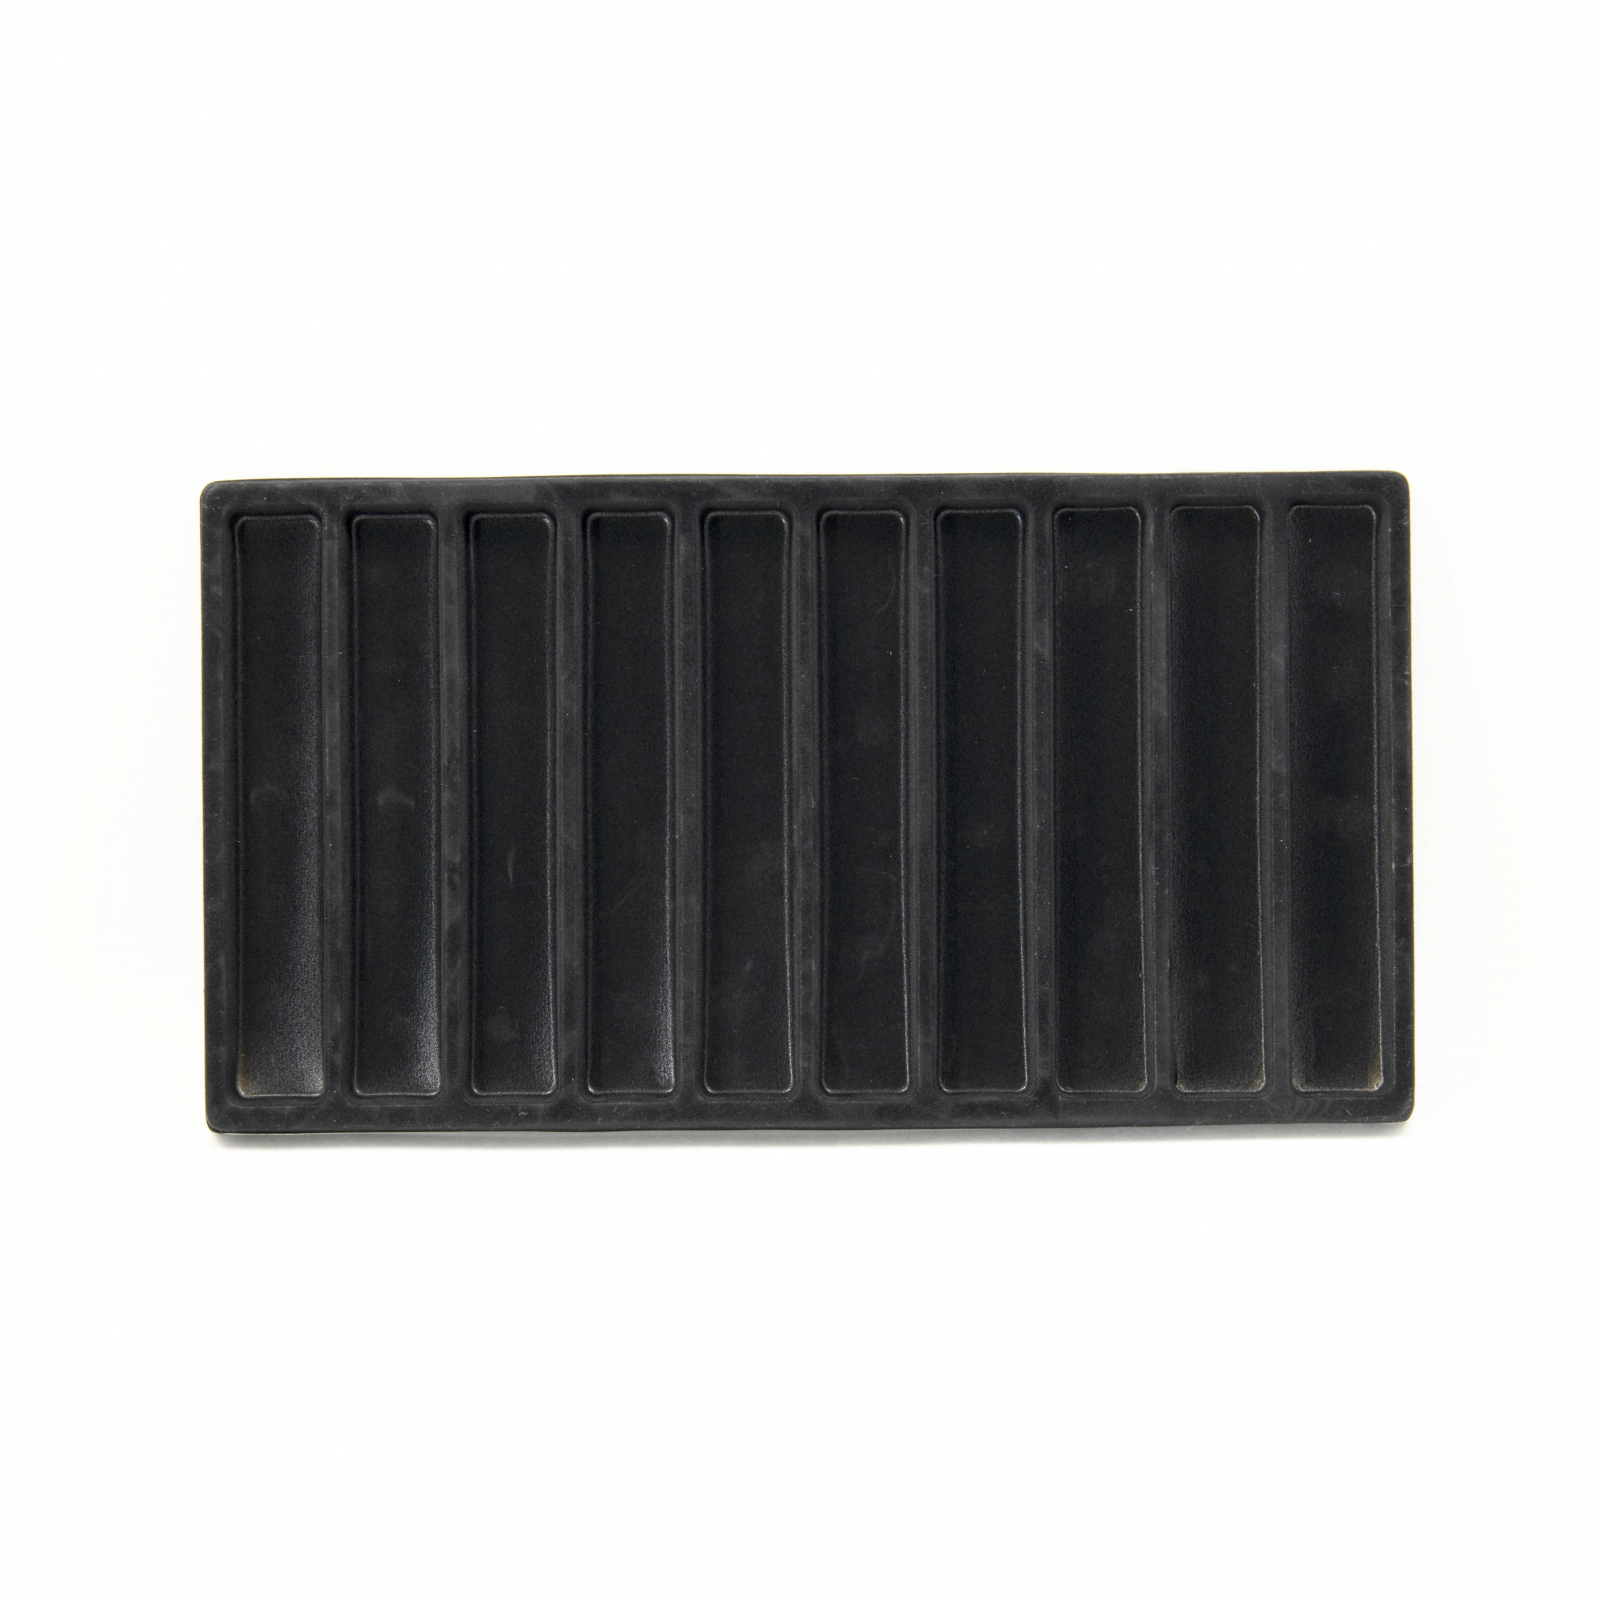 Tooltreaux 10 Section Flocked Black Liner Tray for Jewelry